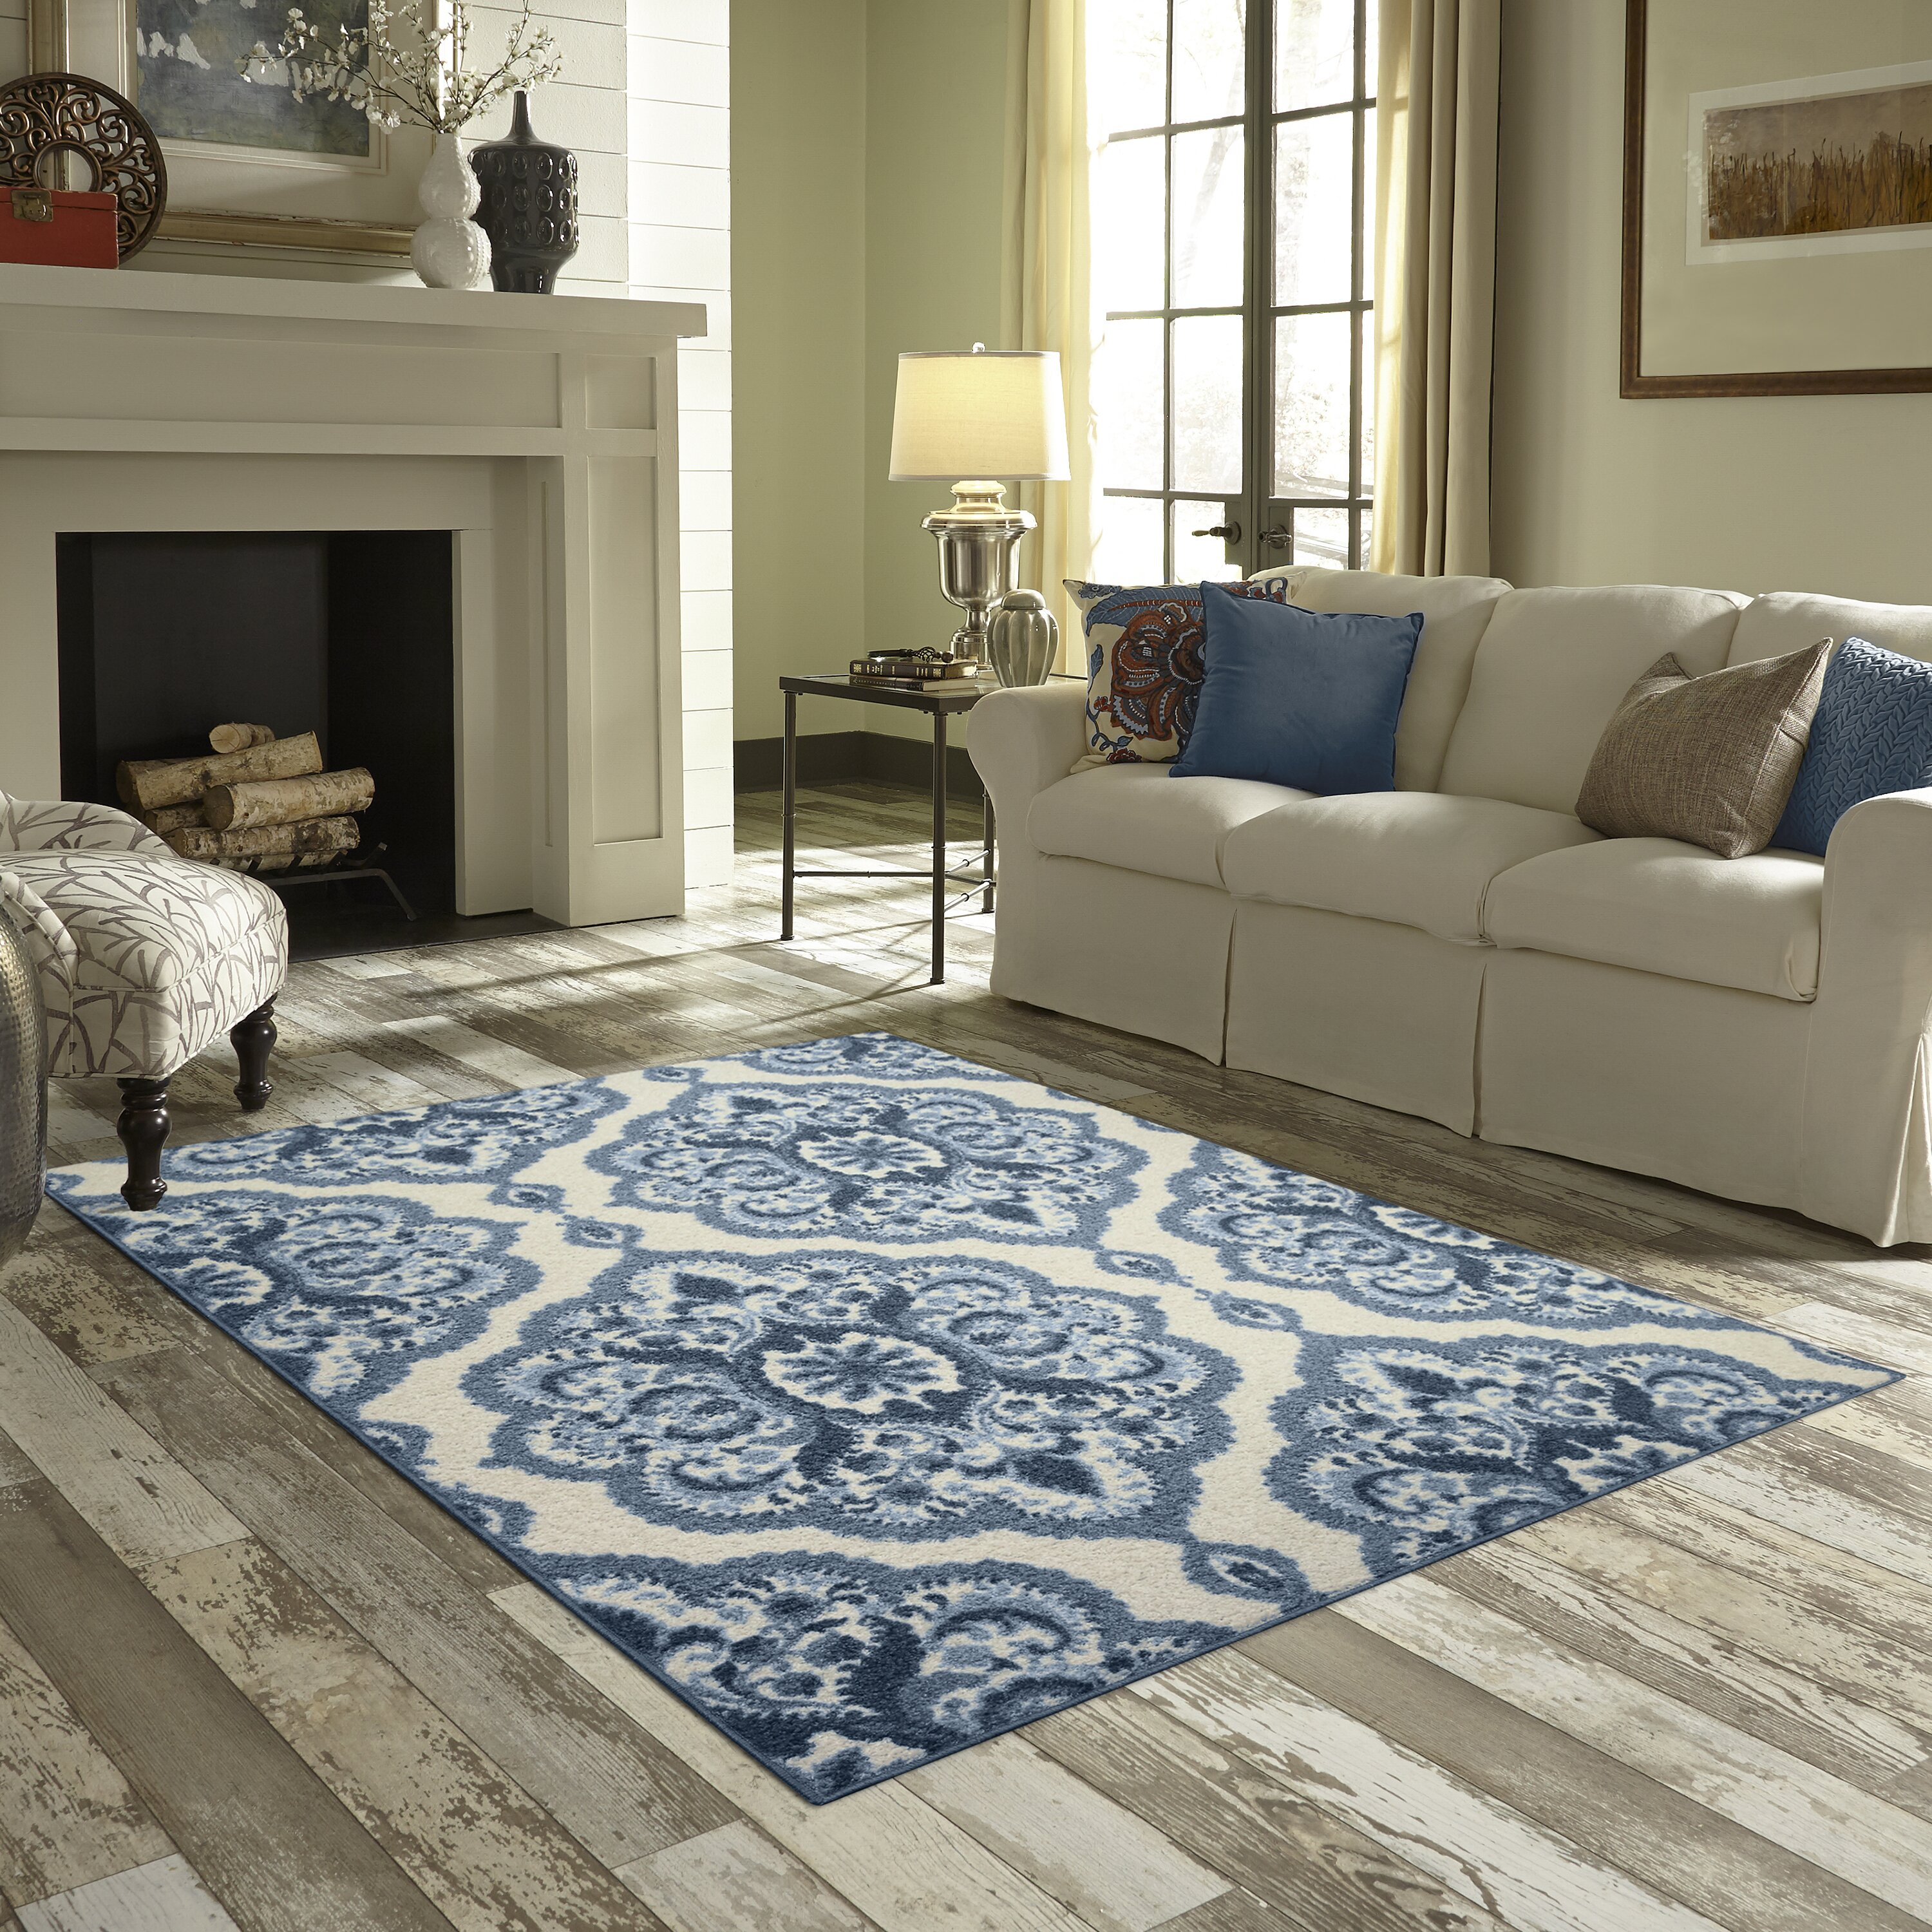 Maples rugs fiona blue area rug